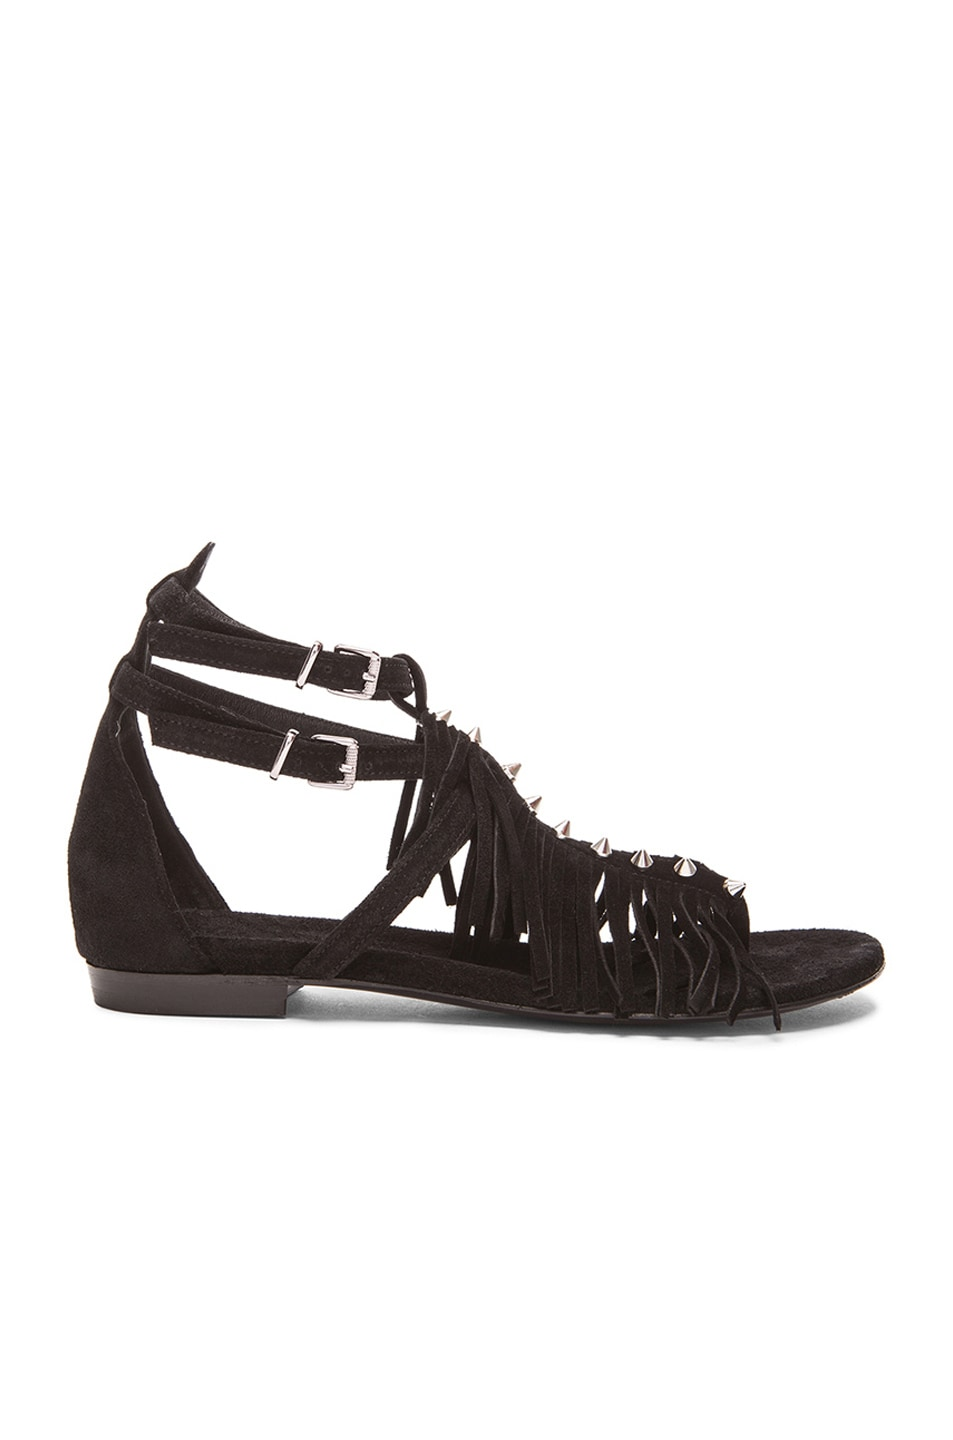 4f7be3fb8104 Image 1 of Barbara Bui Fringe Gladiator Suede Sandals in Black